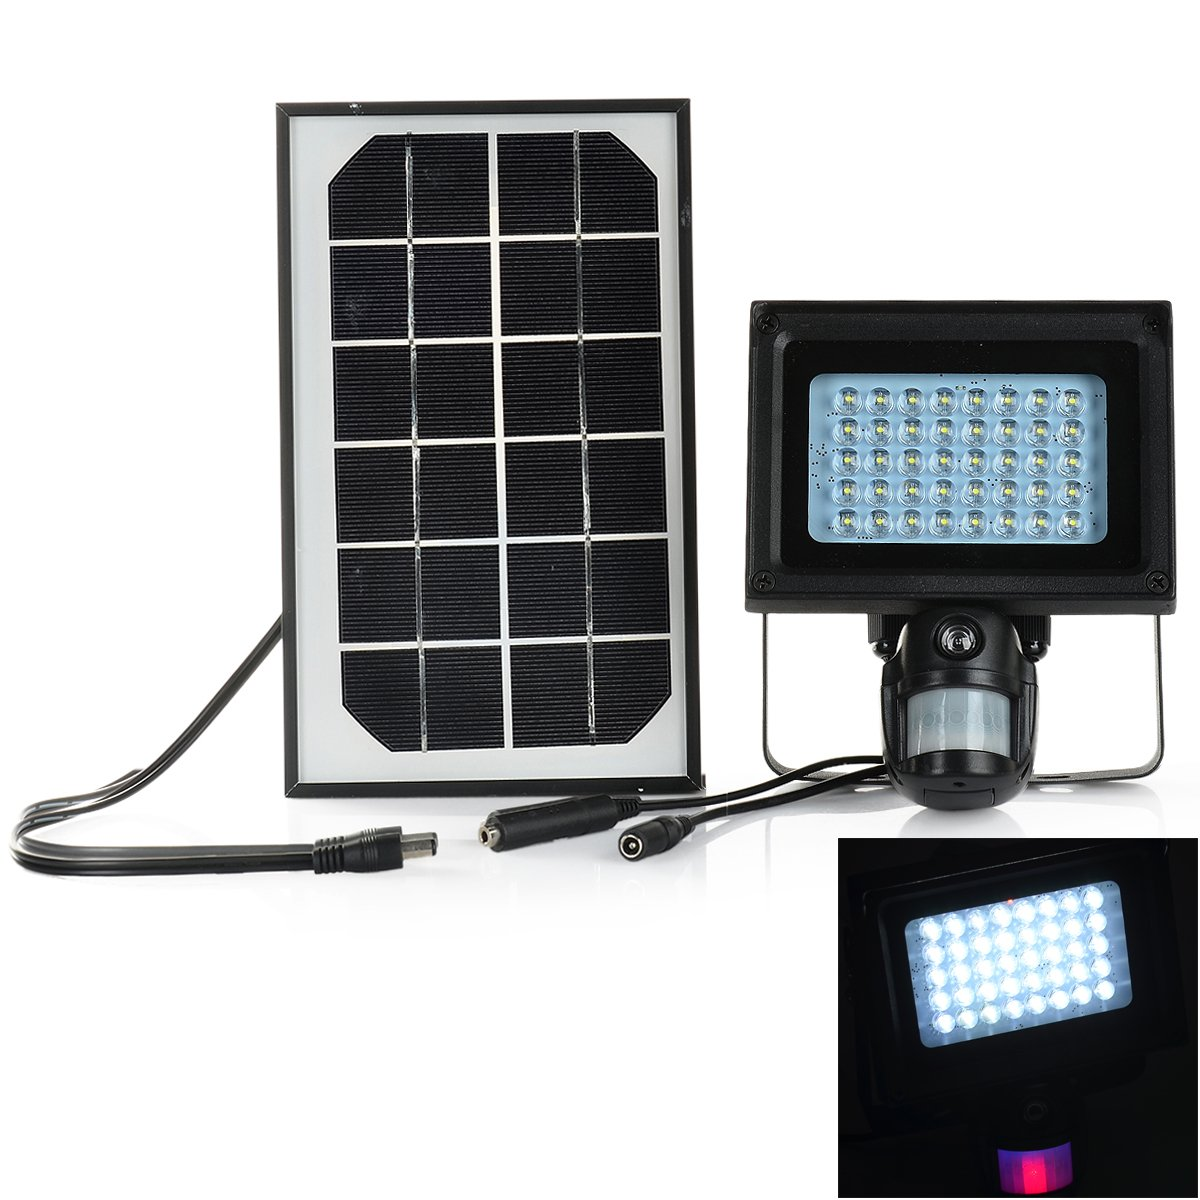 Solar Powered 1-CH Windows 7 Projection Lamp + 1.3MP PIR DVR - Black by OLSUS